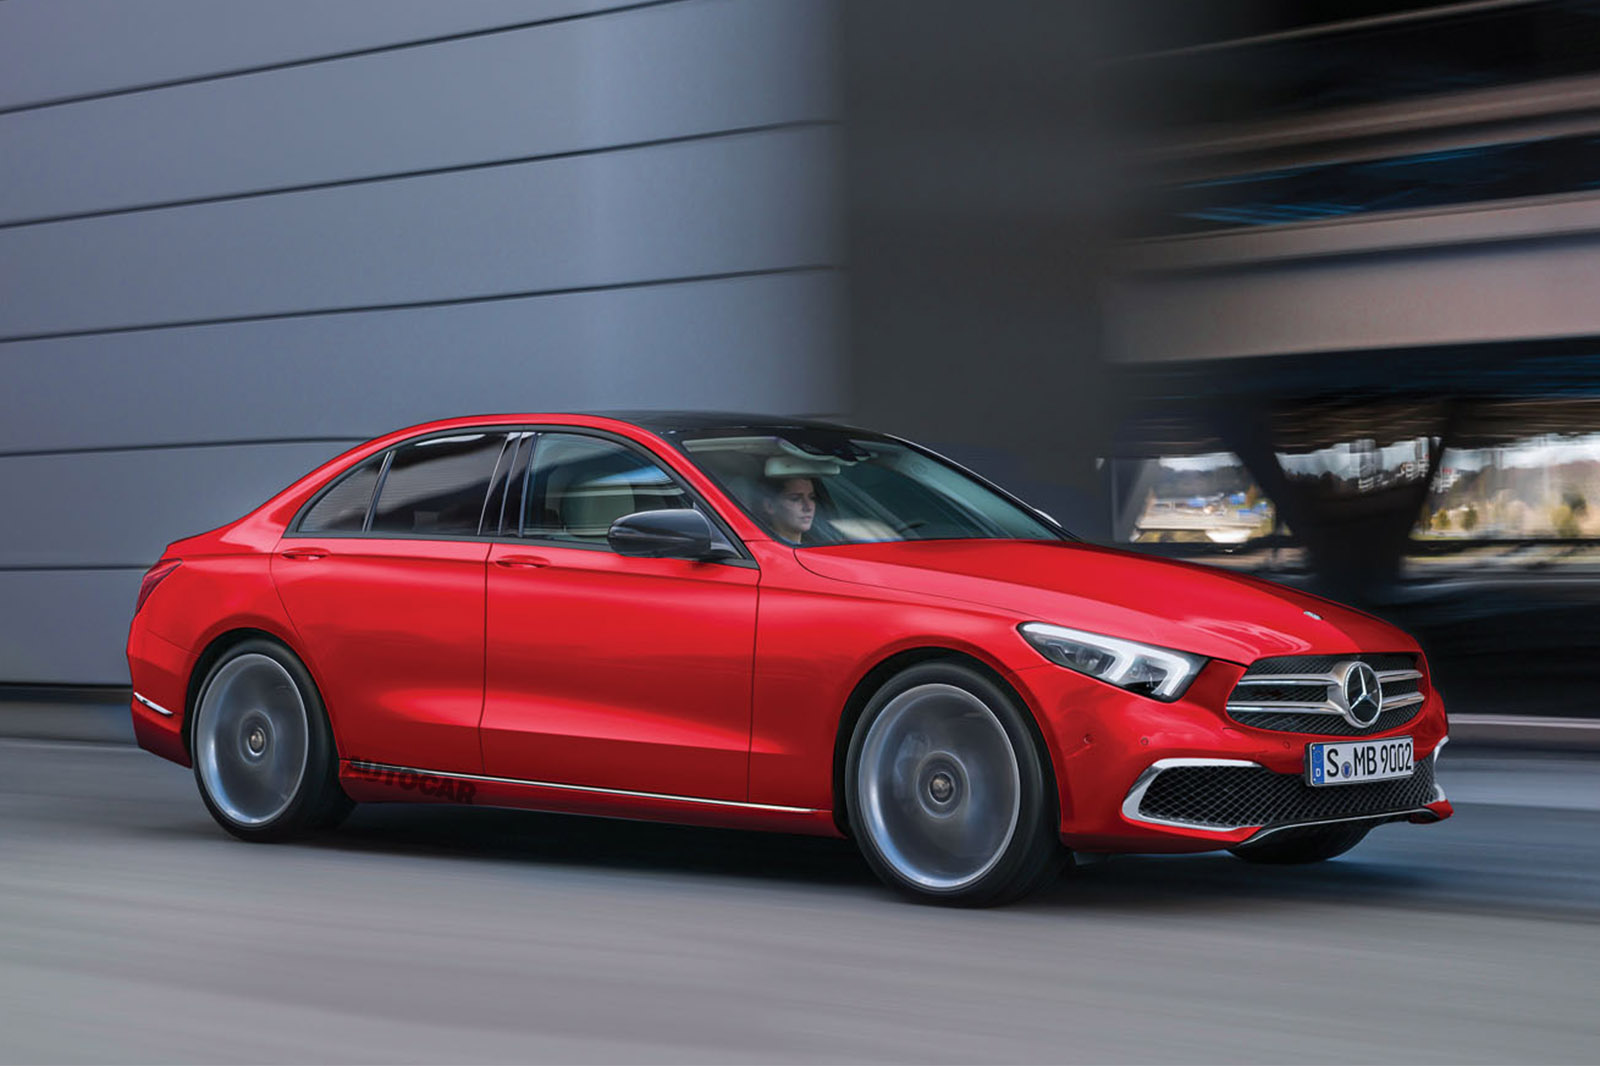 Mercedes to launch 5 new models by 5 in massive rollout  Autocar